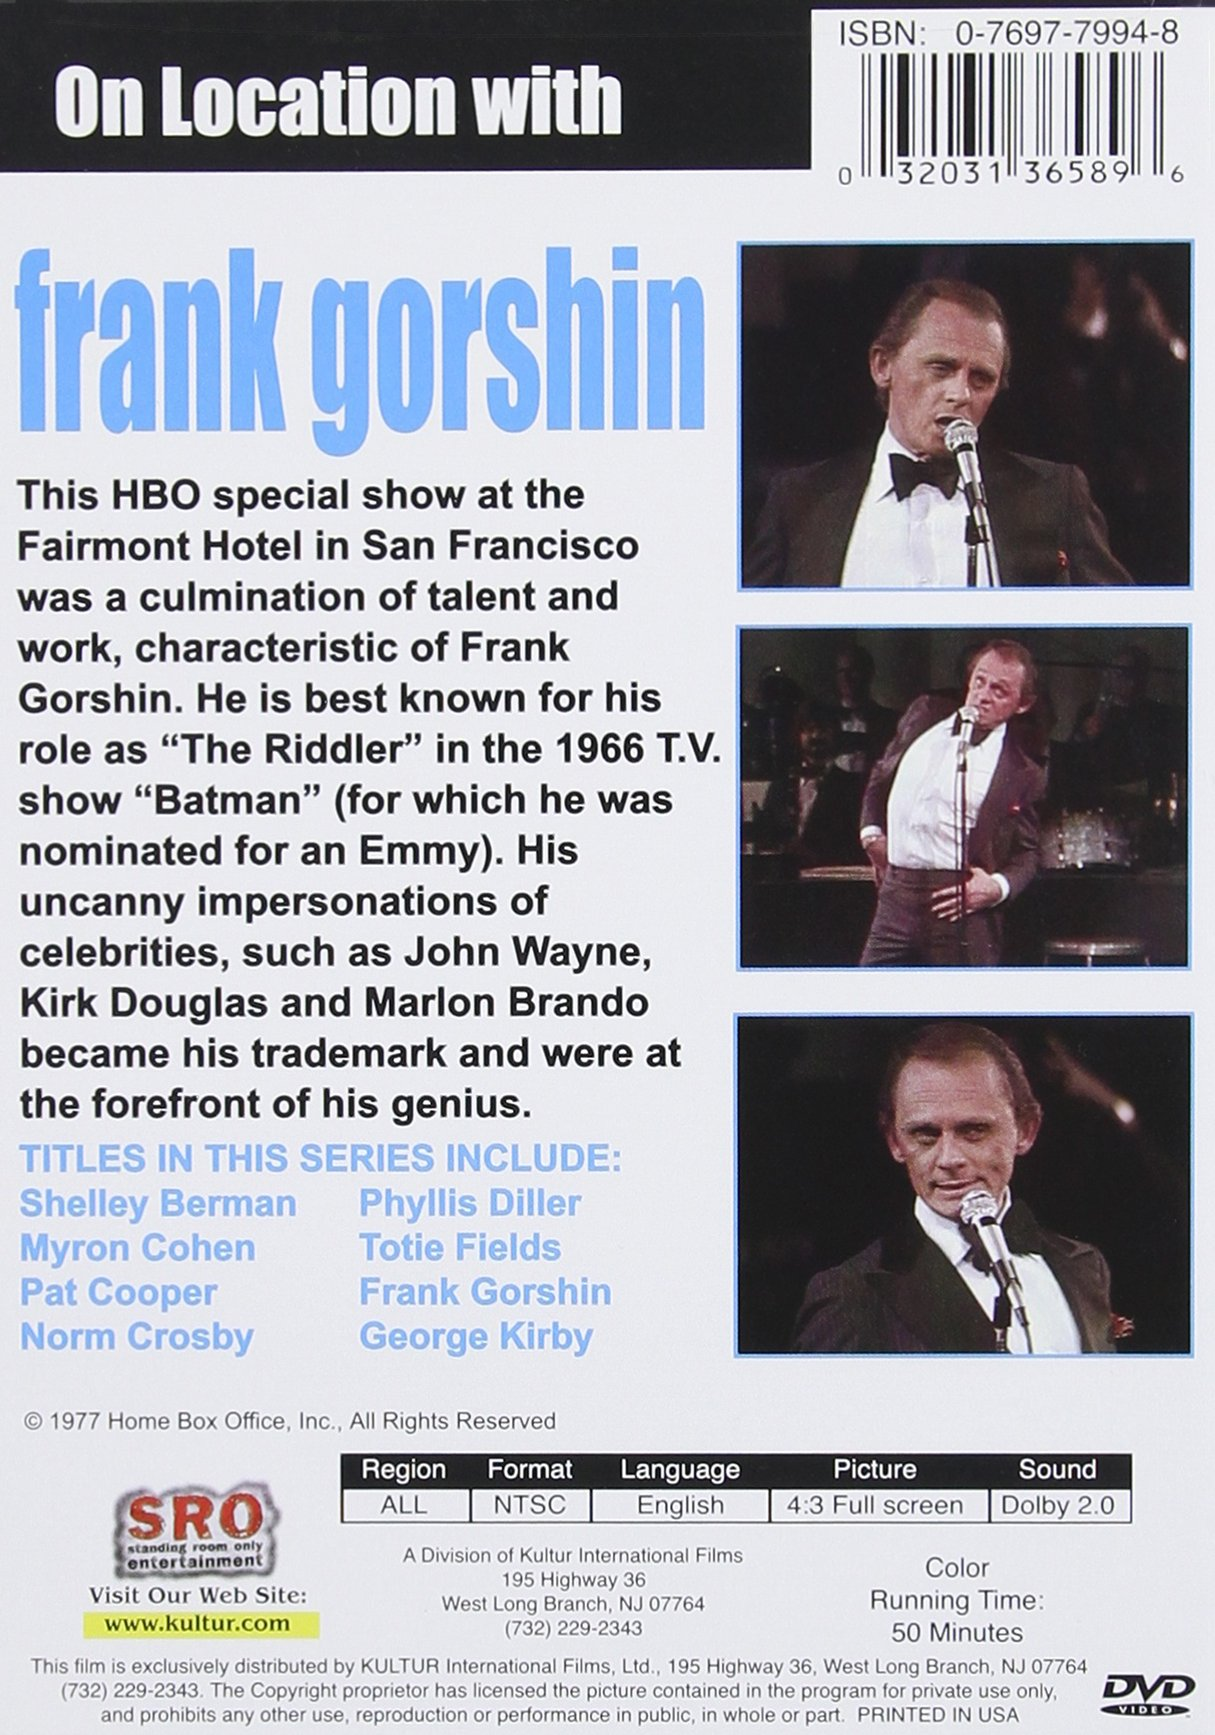 On Location with Frank Gorshin